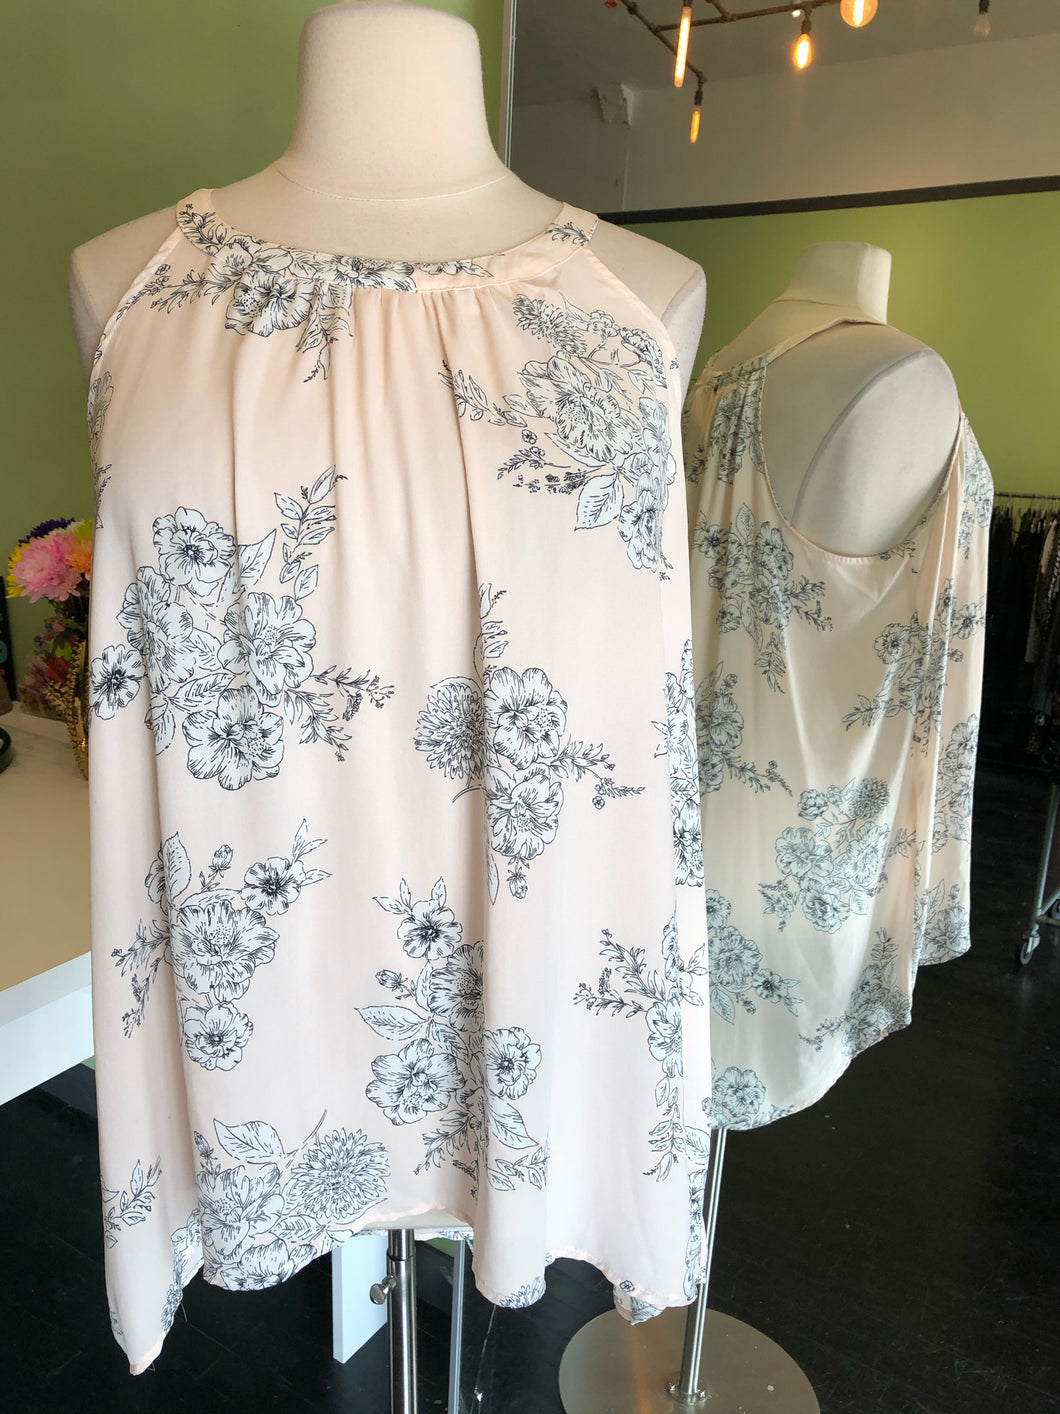 Pale Pink with Delicate White and Black Floral Torrid Top, Size 4